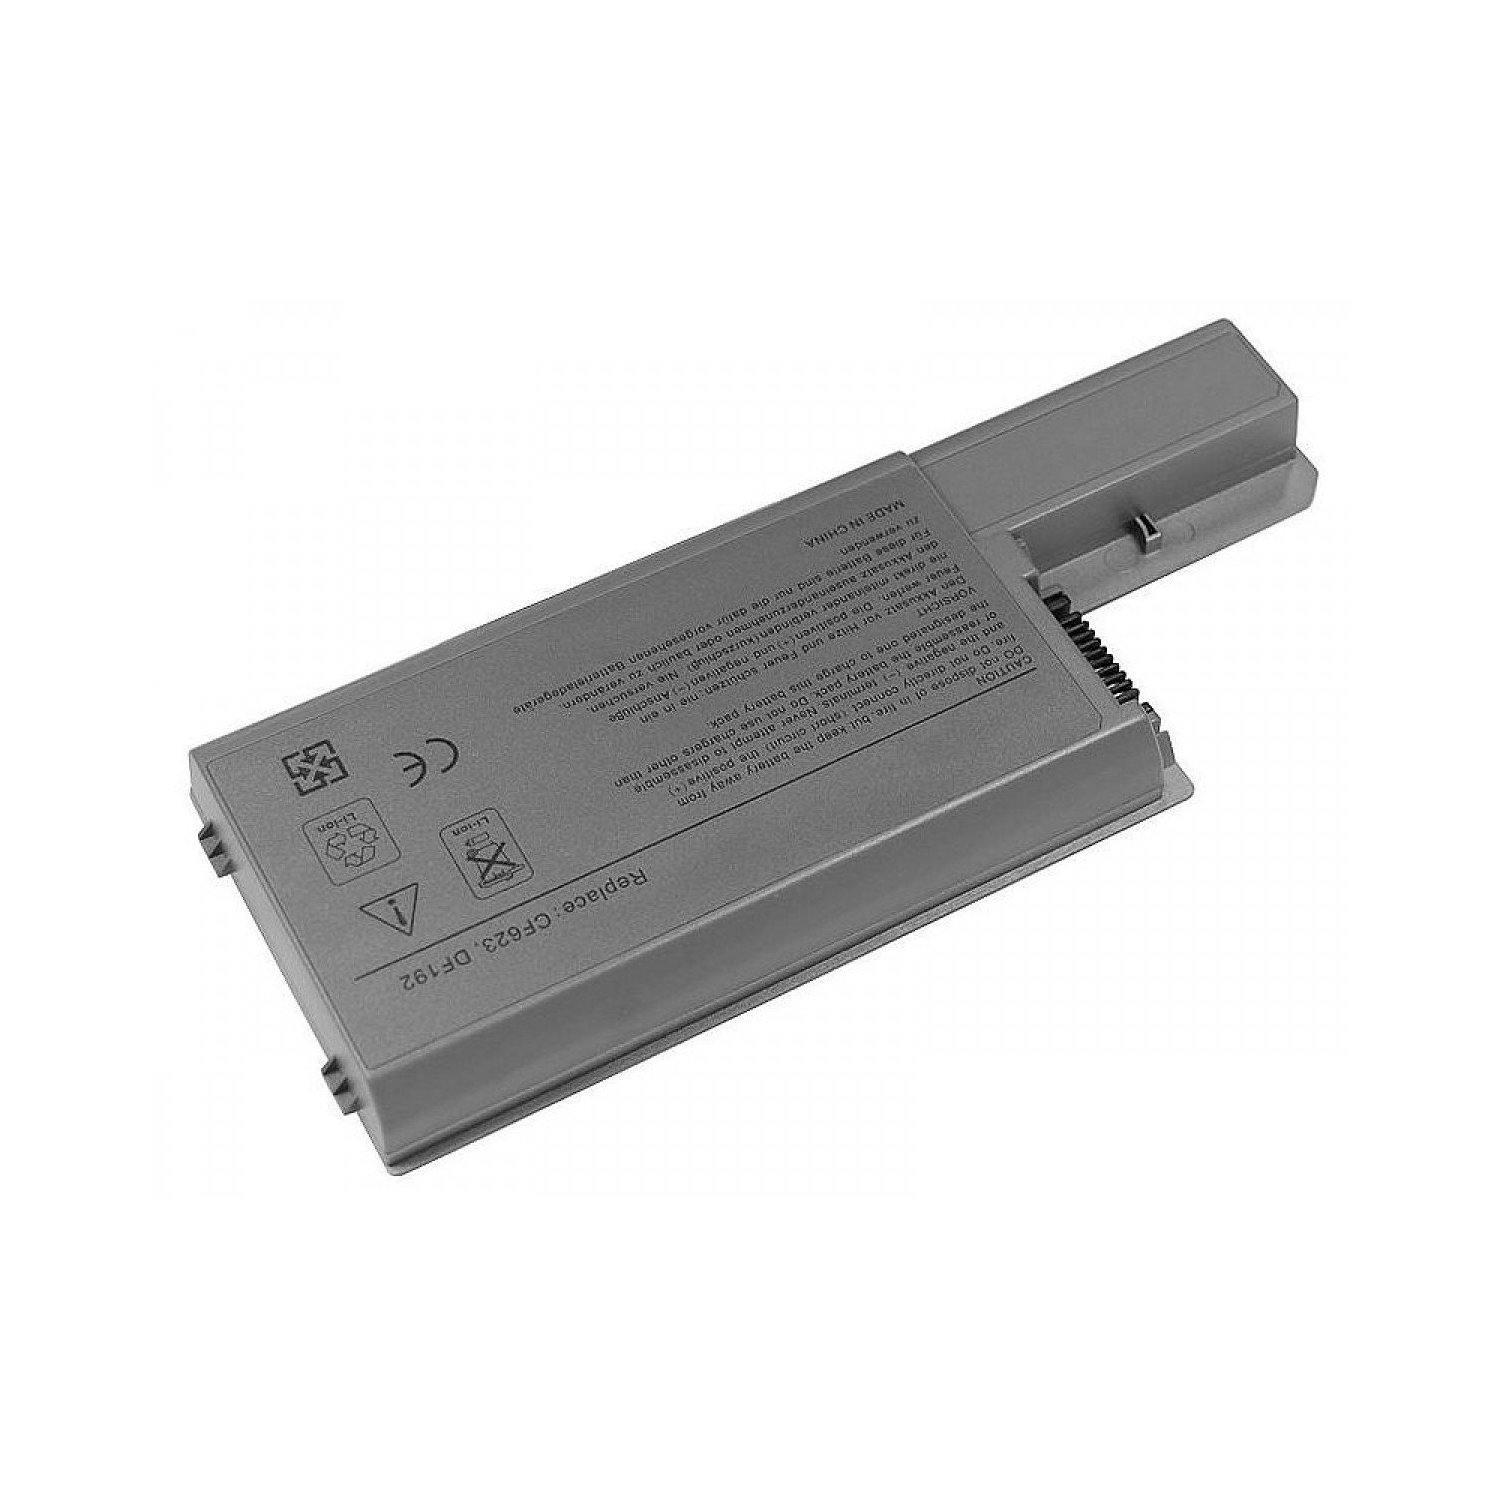 Dell-D820: Laptop Battery 6-cell for Dell Latitude D820 D830 D531 D531N Precision M65 M4300 M4300 CF623 YD623